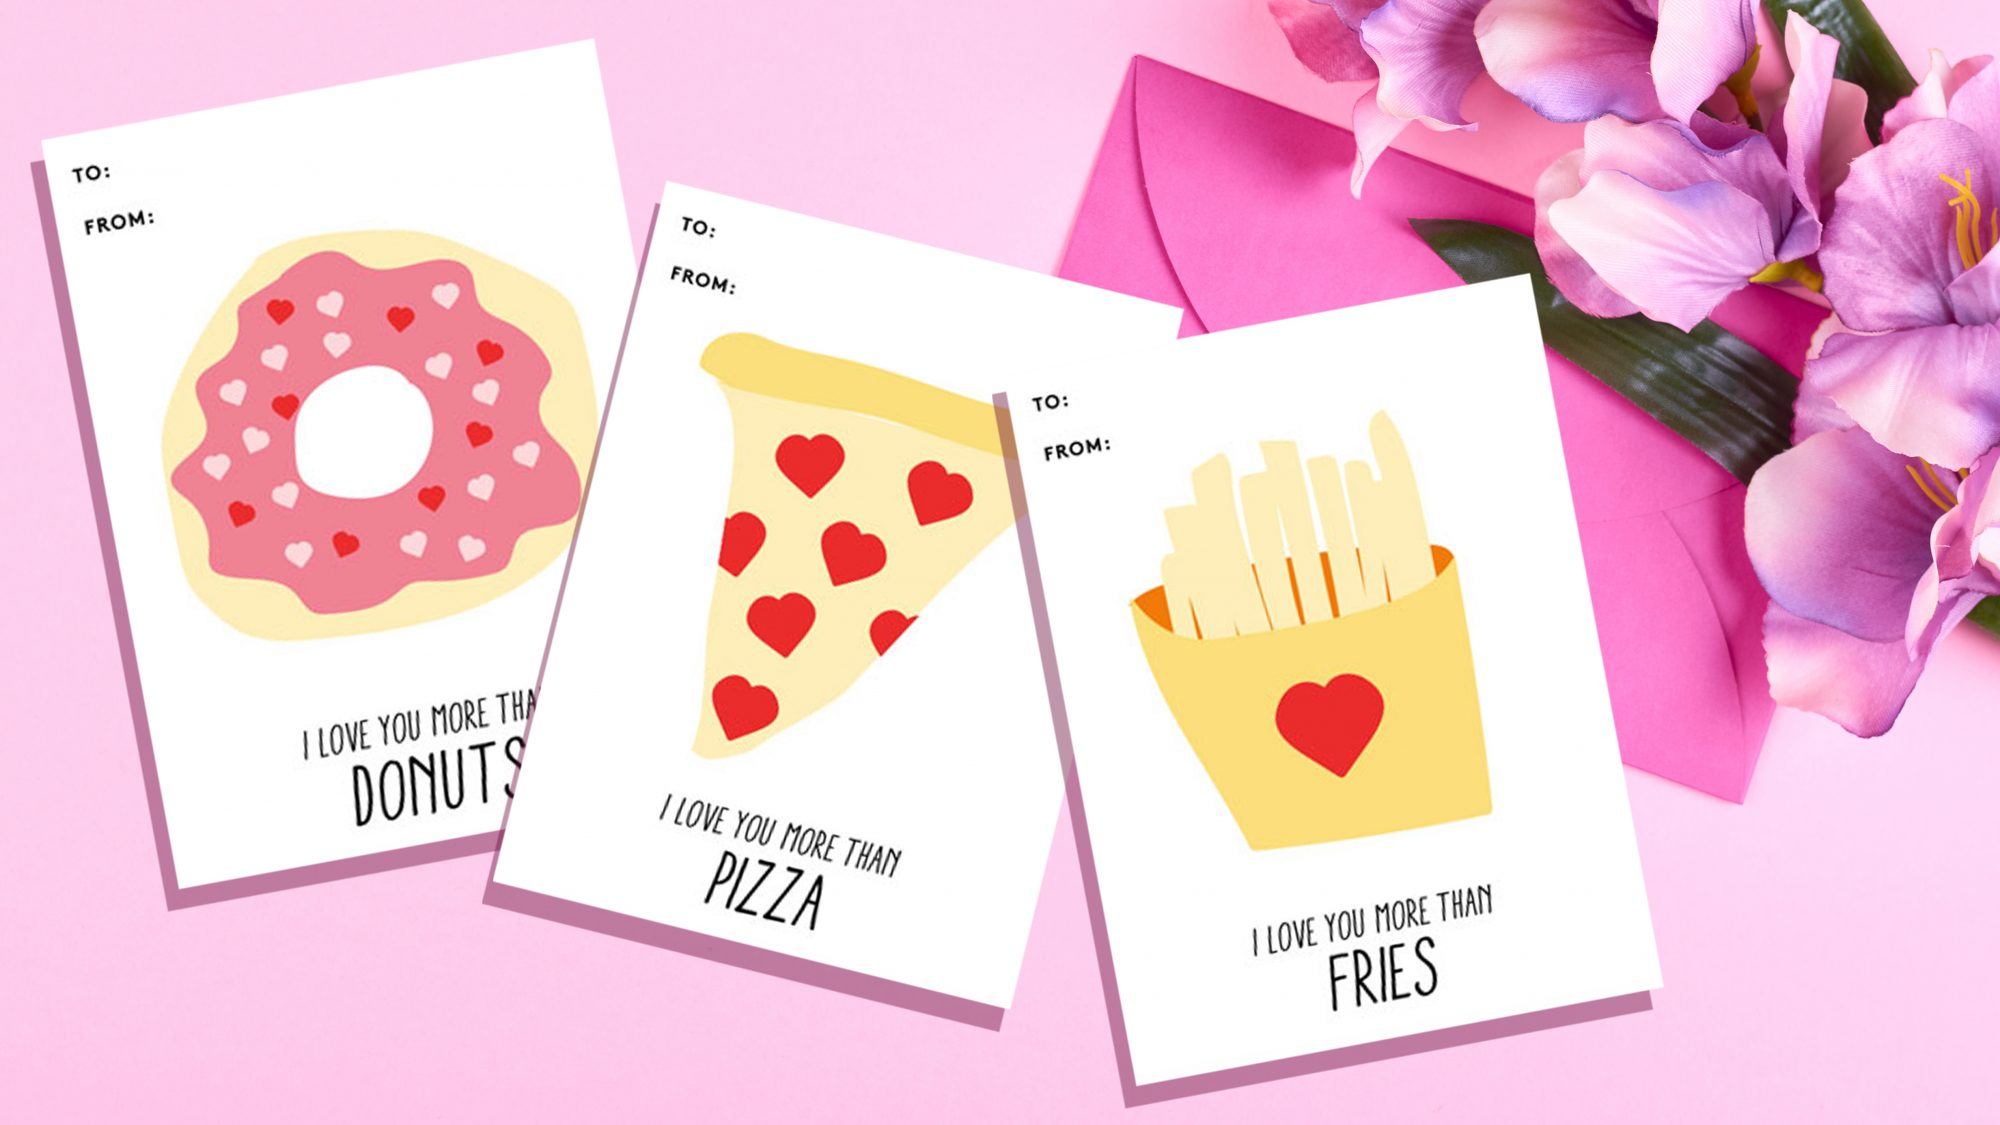 Free printable Valentines cards - printable templates for last-minute Valentines (cards)